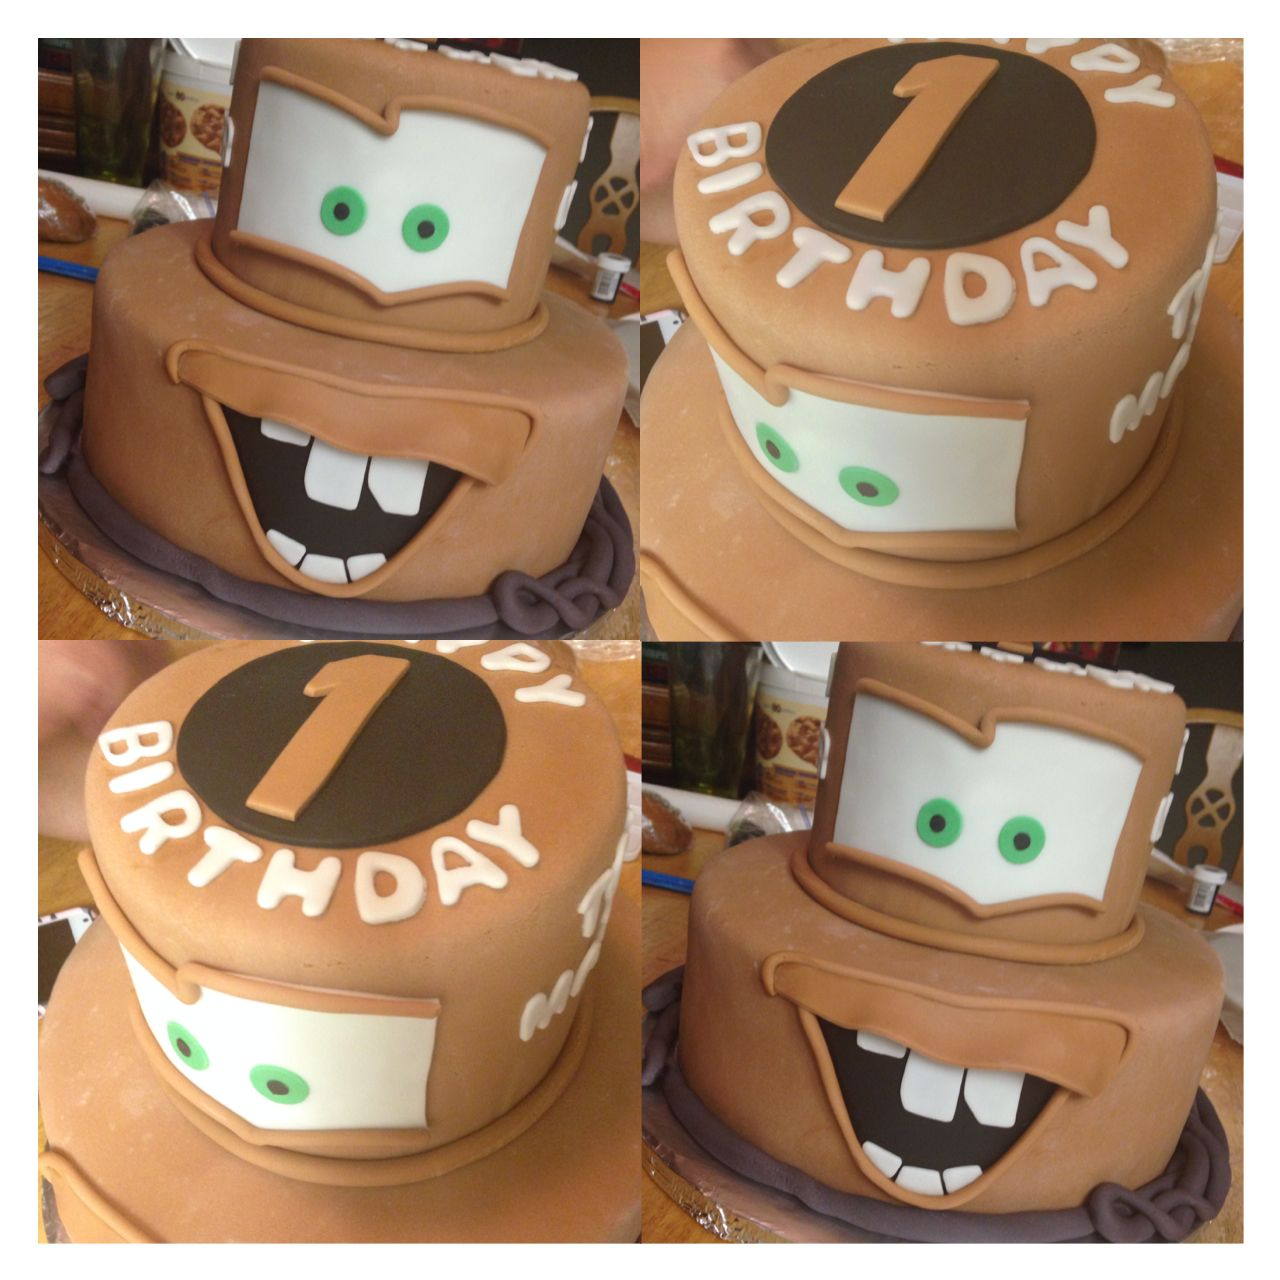 Phenomenal Tow Mater Disney Cars Cakes Cake Professional Ig Krystiem With Funny Birthday Cards Online Bapapcheapnameinfo